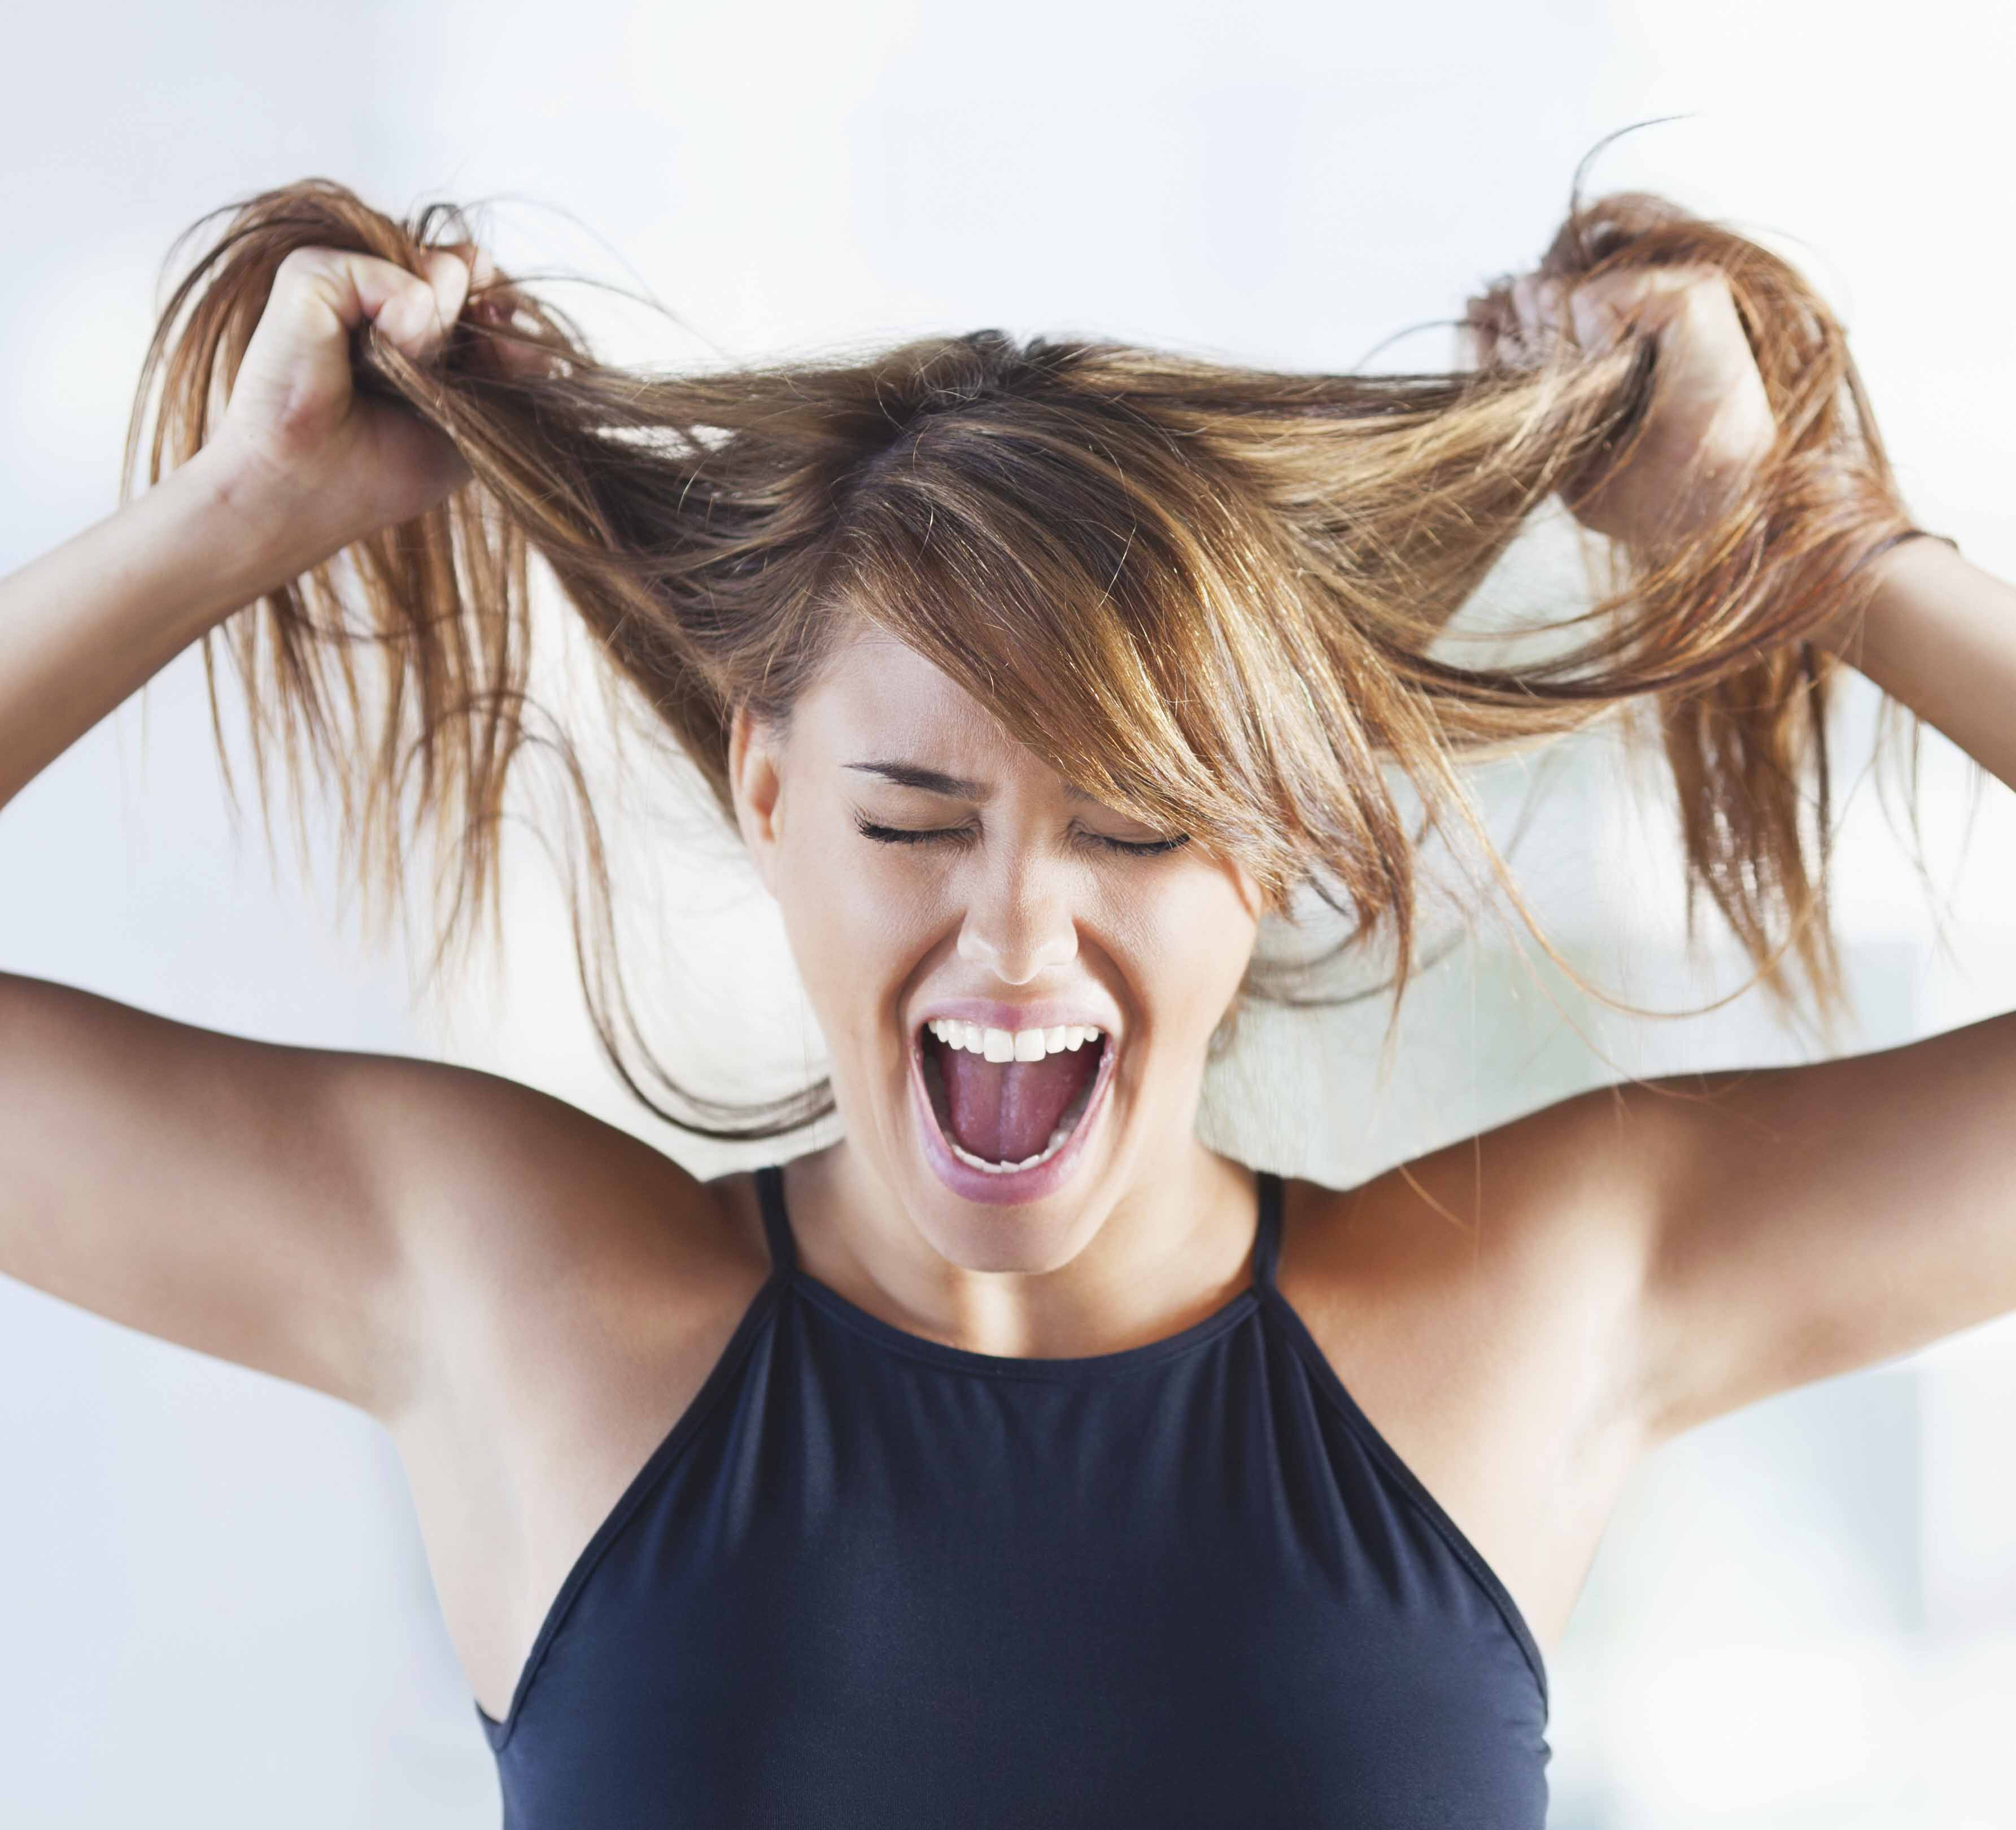 Stress will often show up first in your neck. Safe and natural chiropractic care may help.